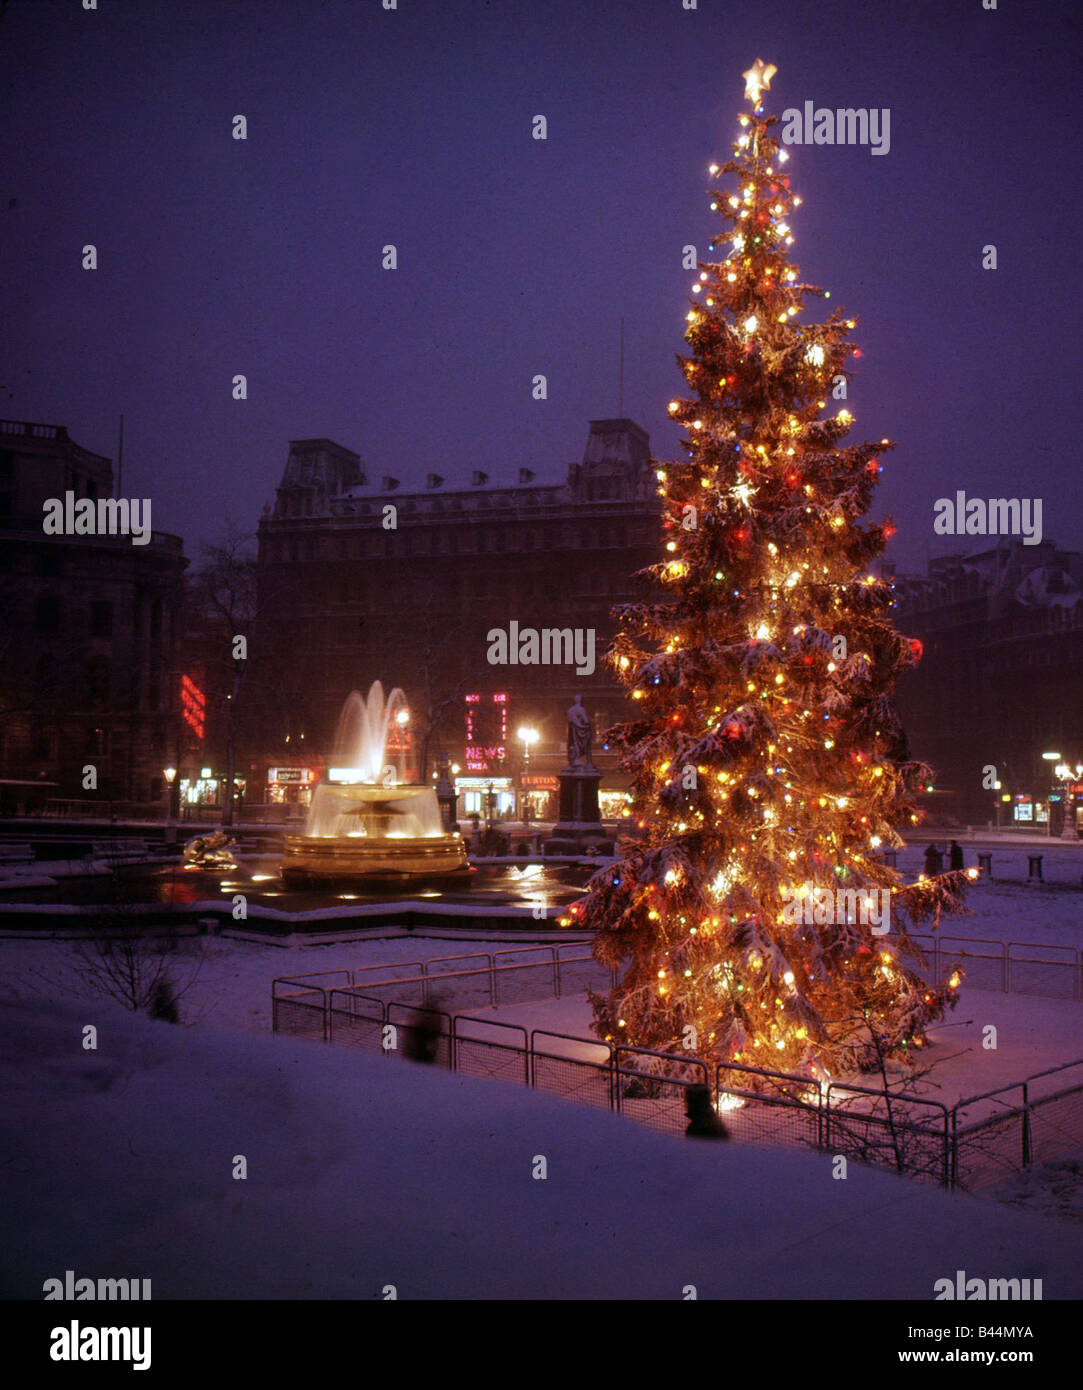 Londons Christmas Tree In Trafalgar Square Is Donated Each Year By Which Country.Christmas Tree Fountains And Lights In Trafalgar Square